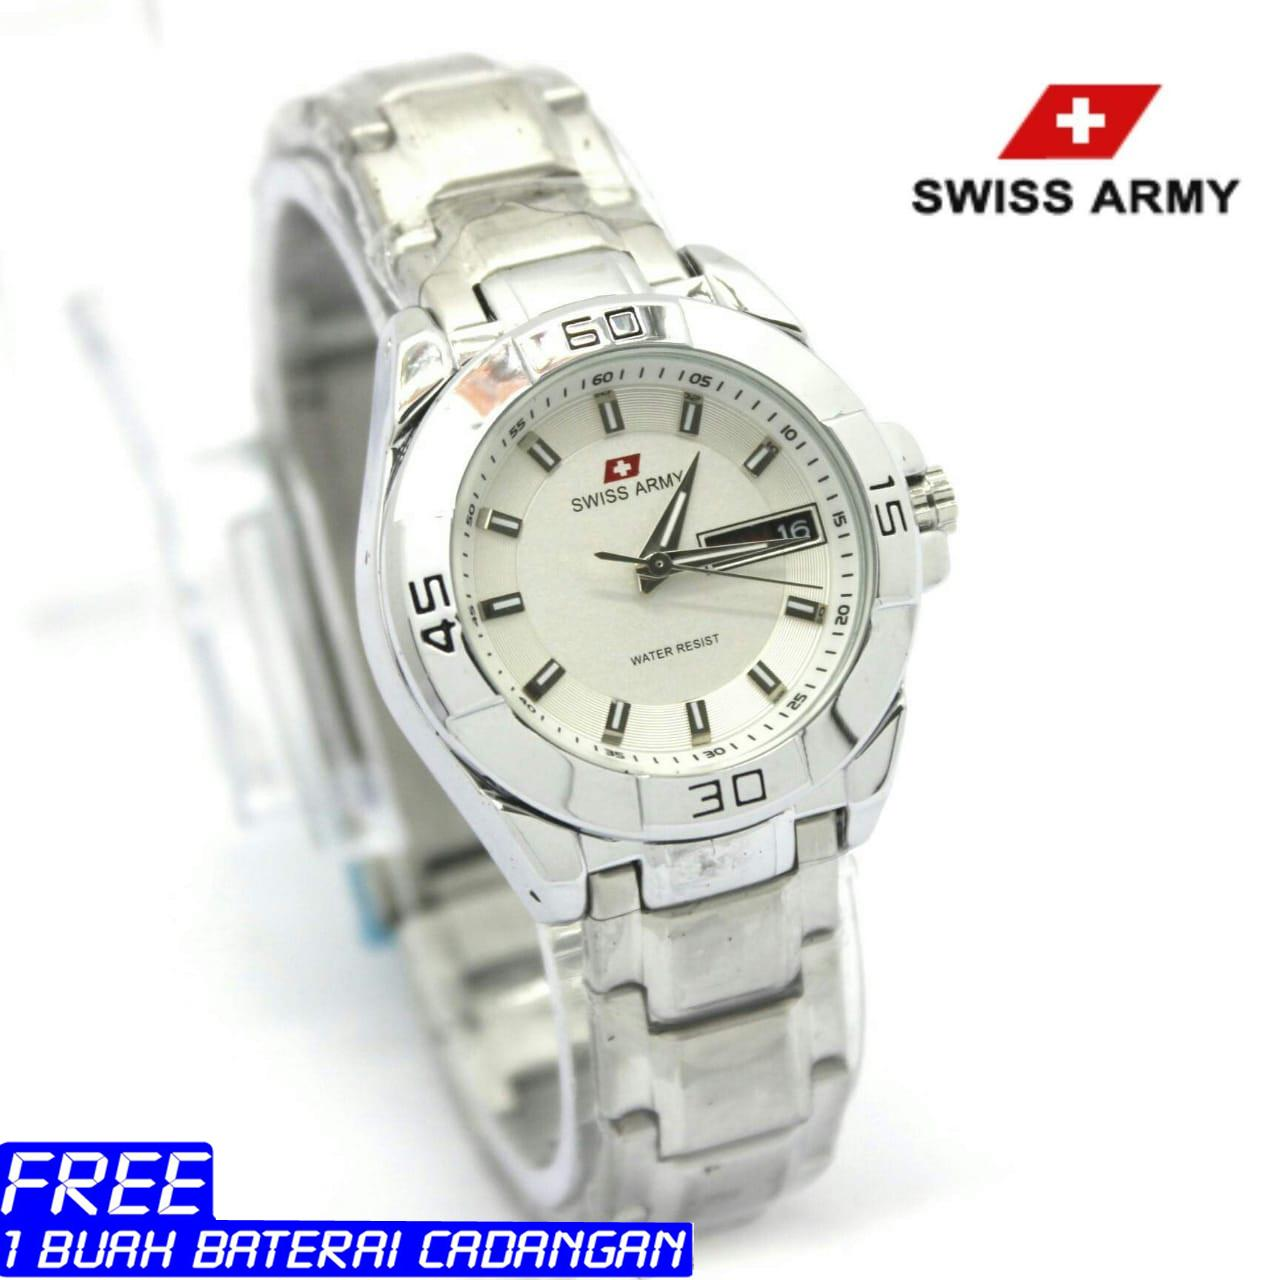 Buy Sell Cheapest Swiss Army Analog Best Quality Product Deals 021 Jam Tangan Pria Hitam Wanita Stainless Stell Time